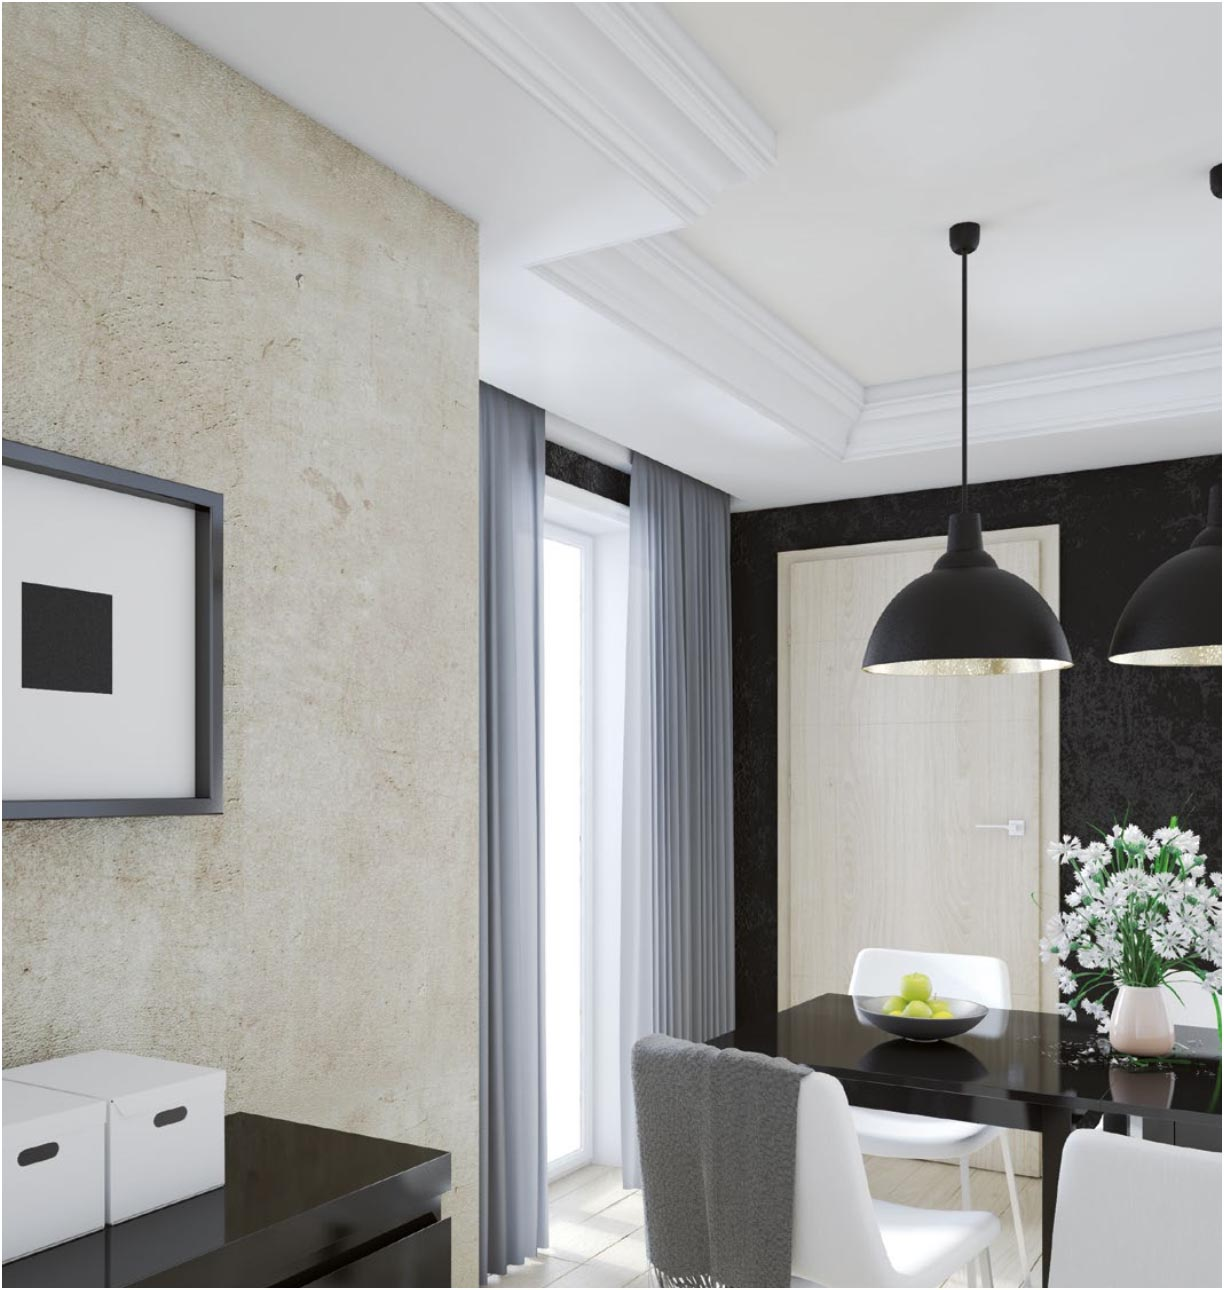 Extruded mouldings Ceiling mouldings XPS, it is a combination of simplicity of the form and the wide varieties of uses. Ideal for both classic and modern interiors.